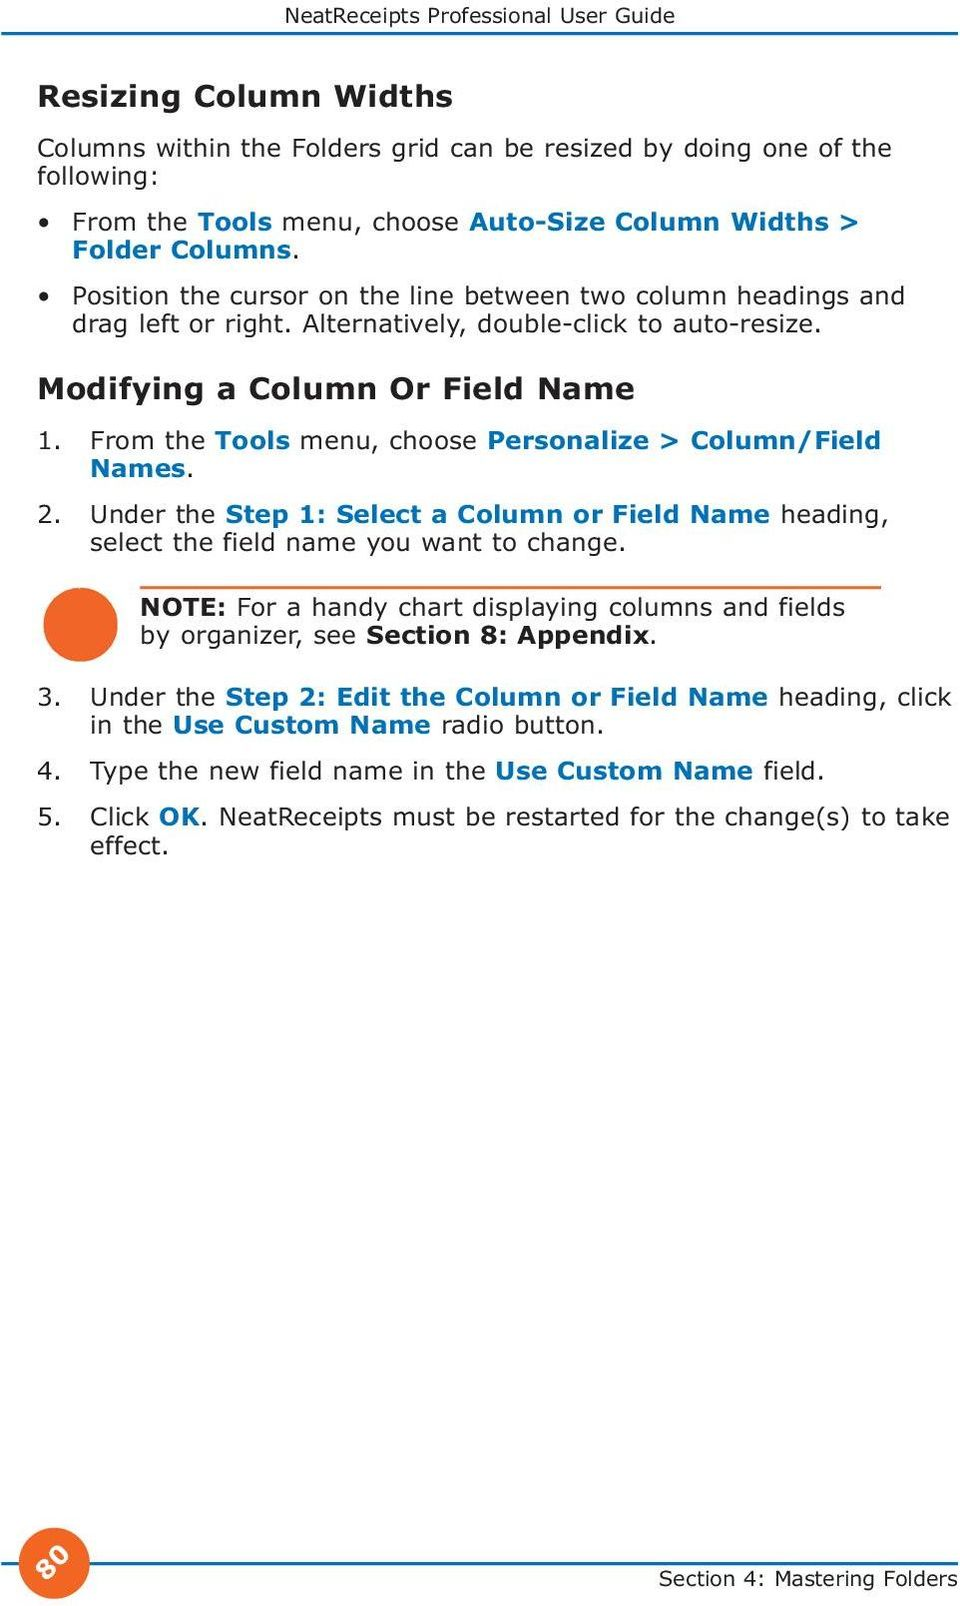 From the Tools menu, choose Personalize > Column/Field Names. 2. Under the Step 1: Select a Column or Field Name heading, select the field name you want to change.